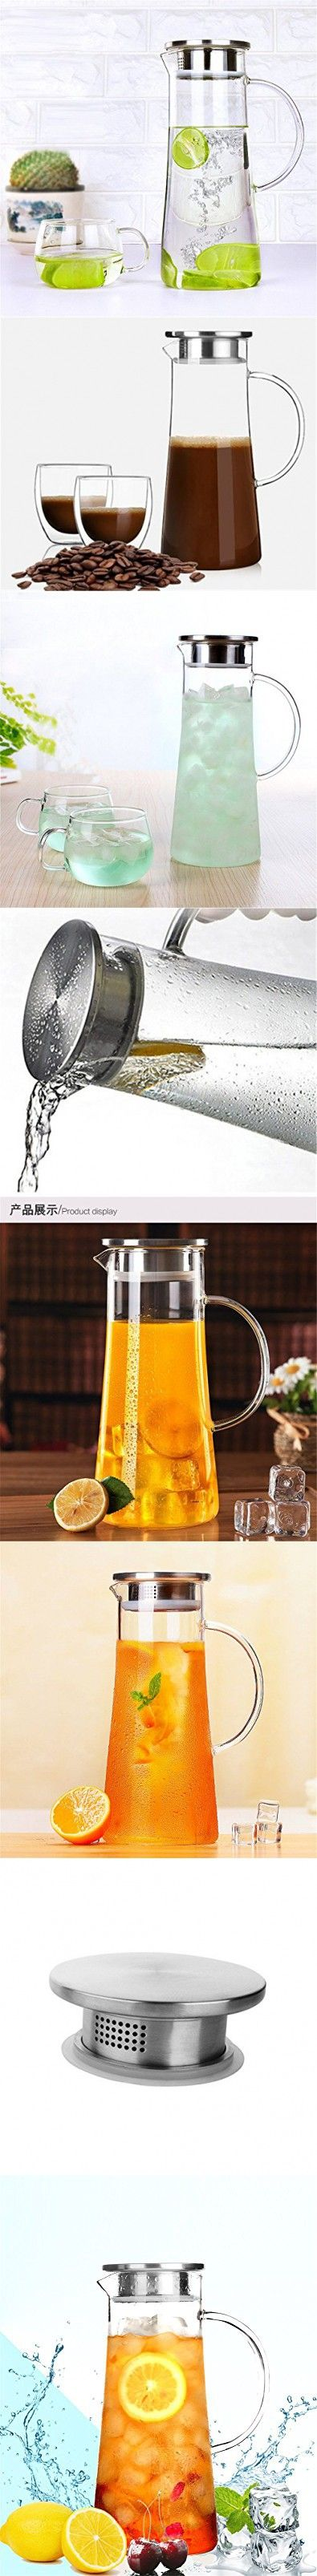 Luxtea Water Carafe Juice Infuser Borosilicate Bottle Glass Pitcher 1.5L/ 53 oz